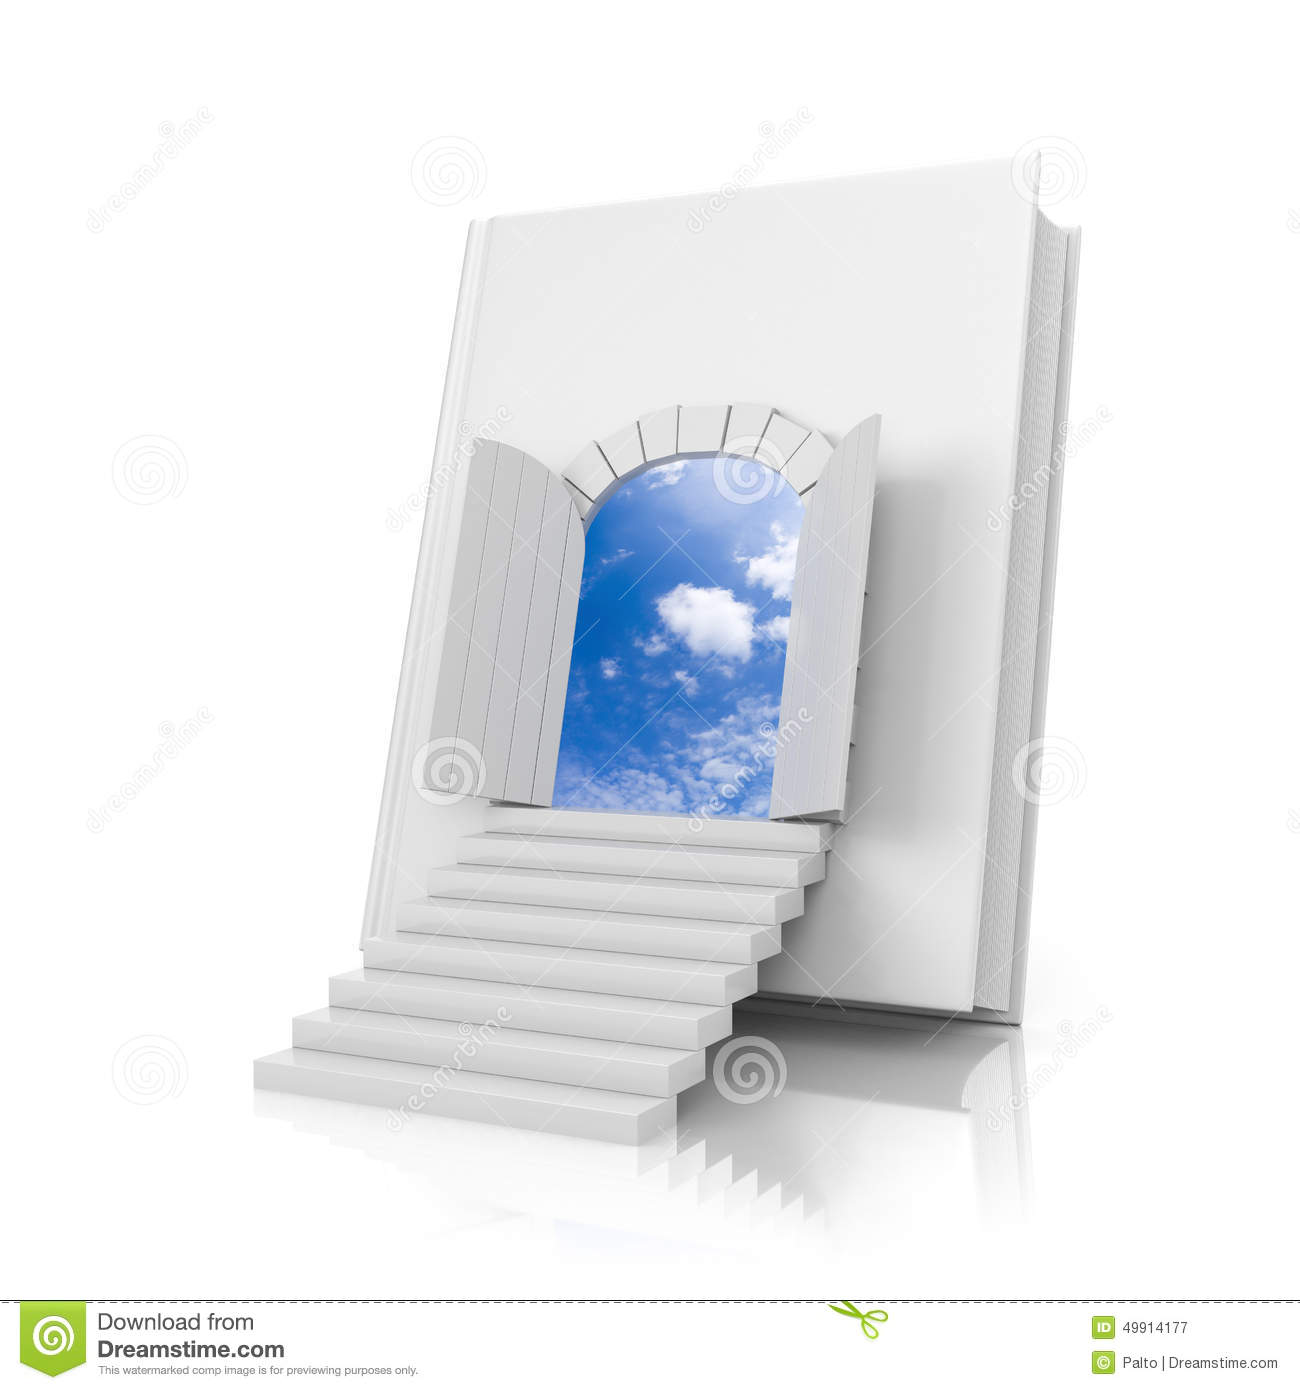 Book with door  sc 1 st  Dreamstime.com & Book with door stock illustration. Illustration of illustration ...